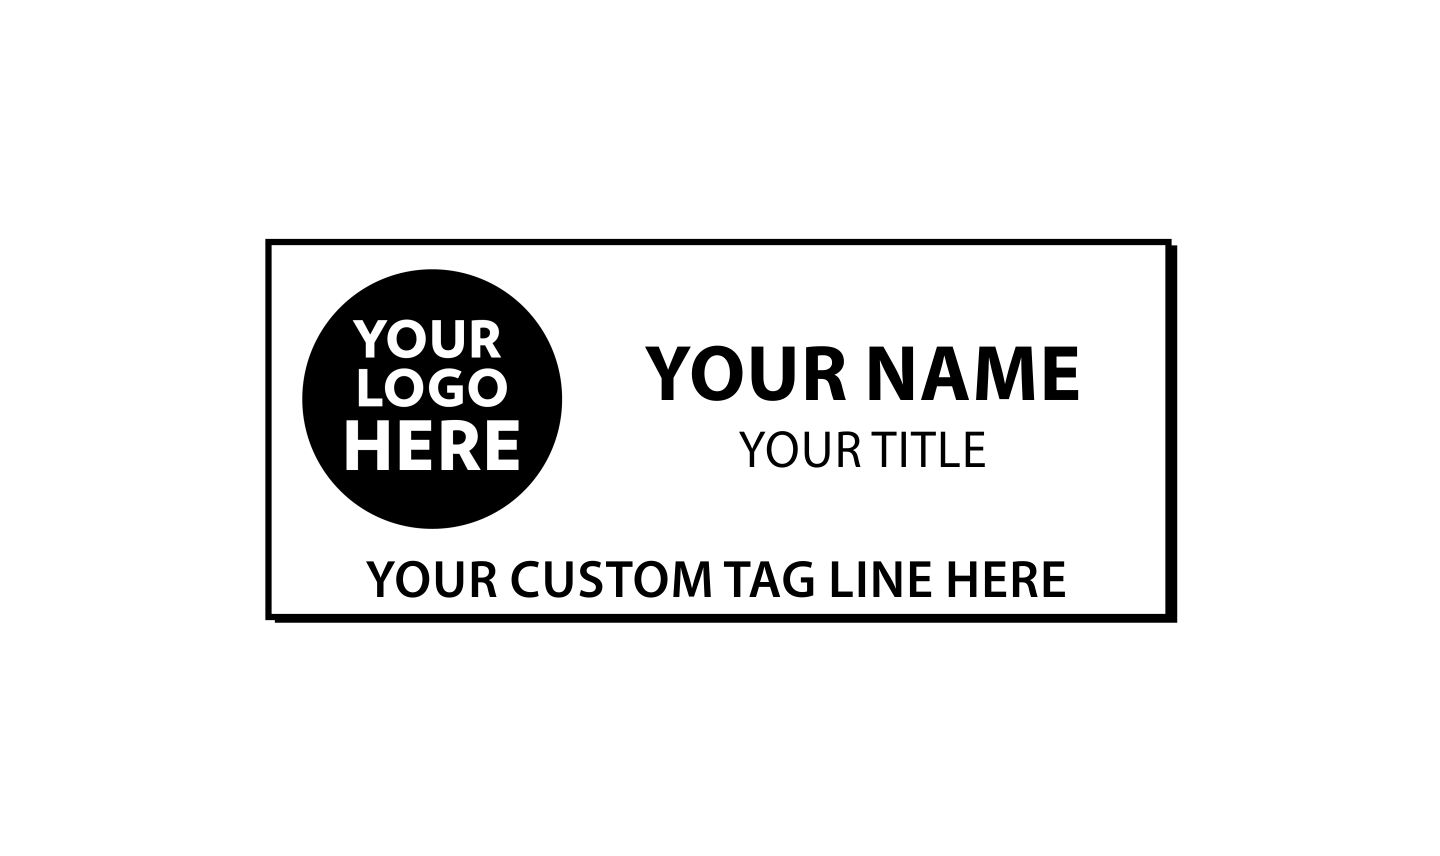 3 X 1 Inch Round Corner Engraved Name Tag